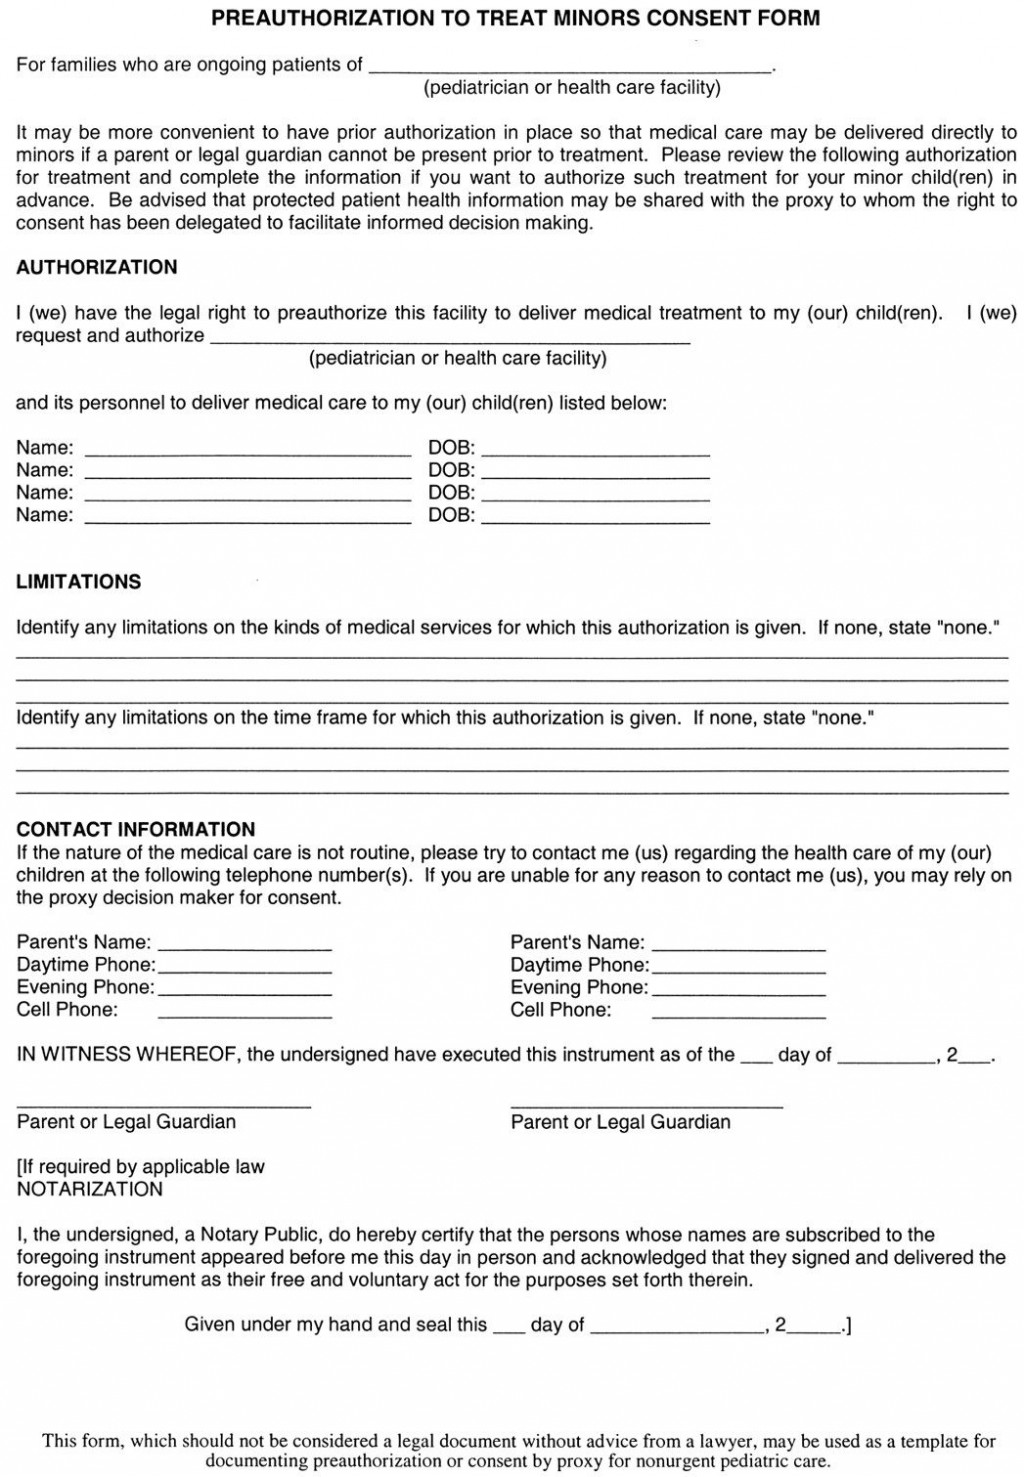 005 Stupendou Medical Treatment Authorization And Consent Form Template High Def Large